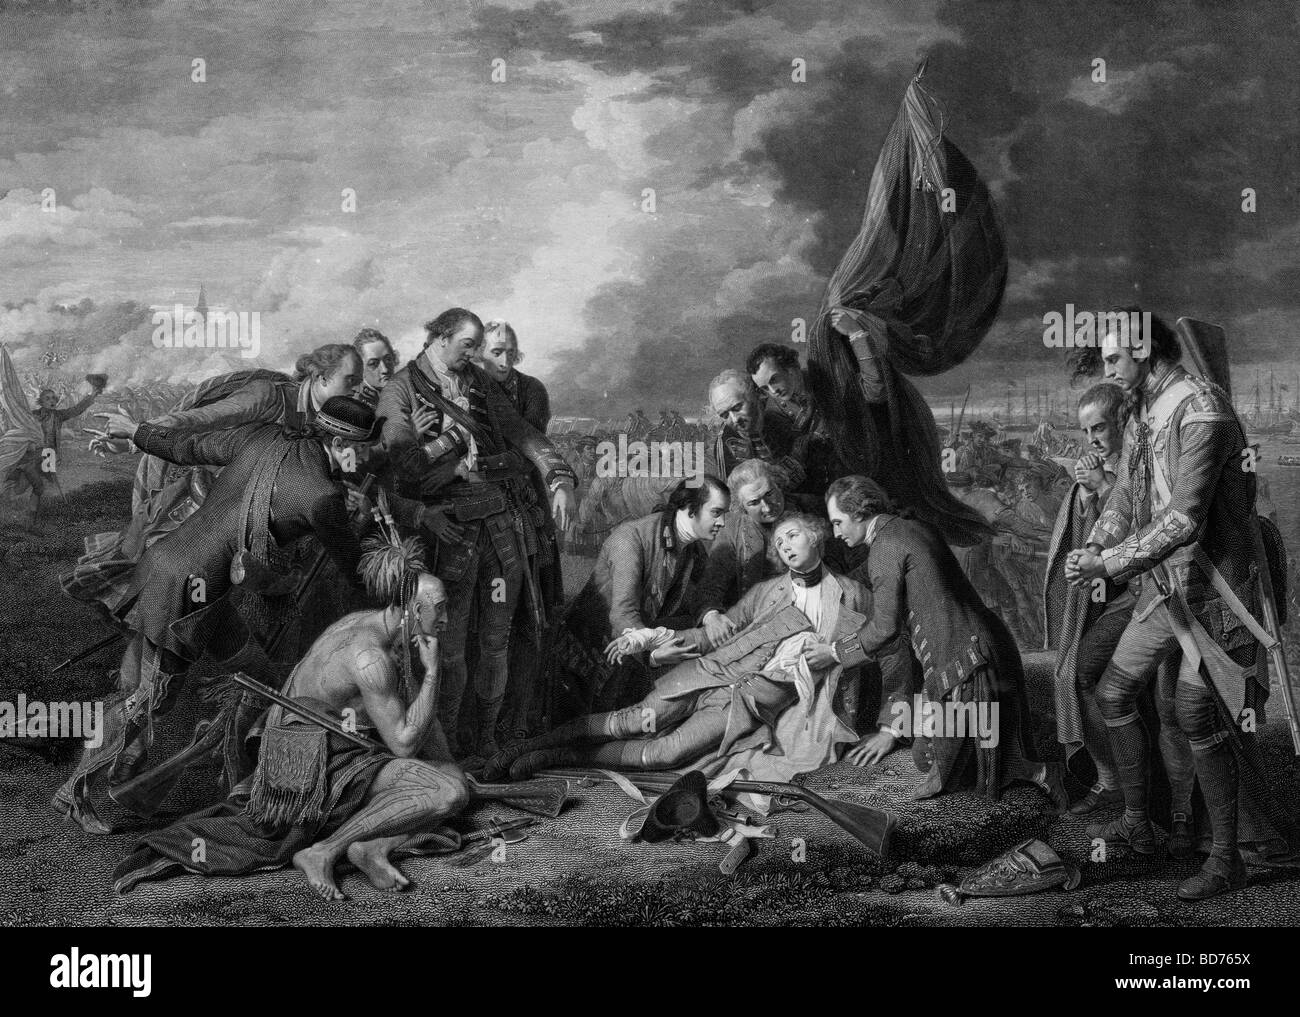 The death of General Wolfe lying mortally wounded, surrounded by soldiers and a Native, during the siege of Quebec - Stock Image